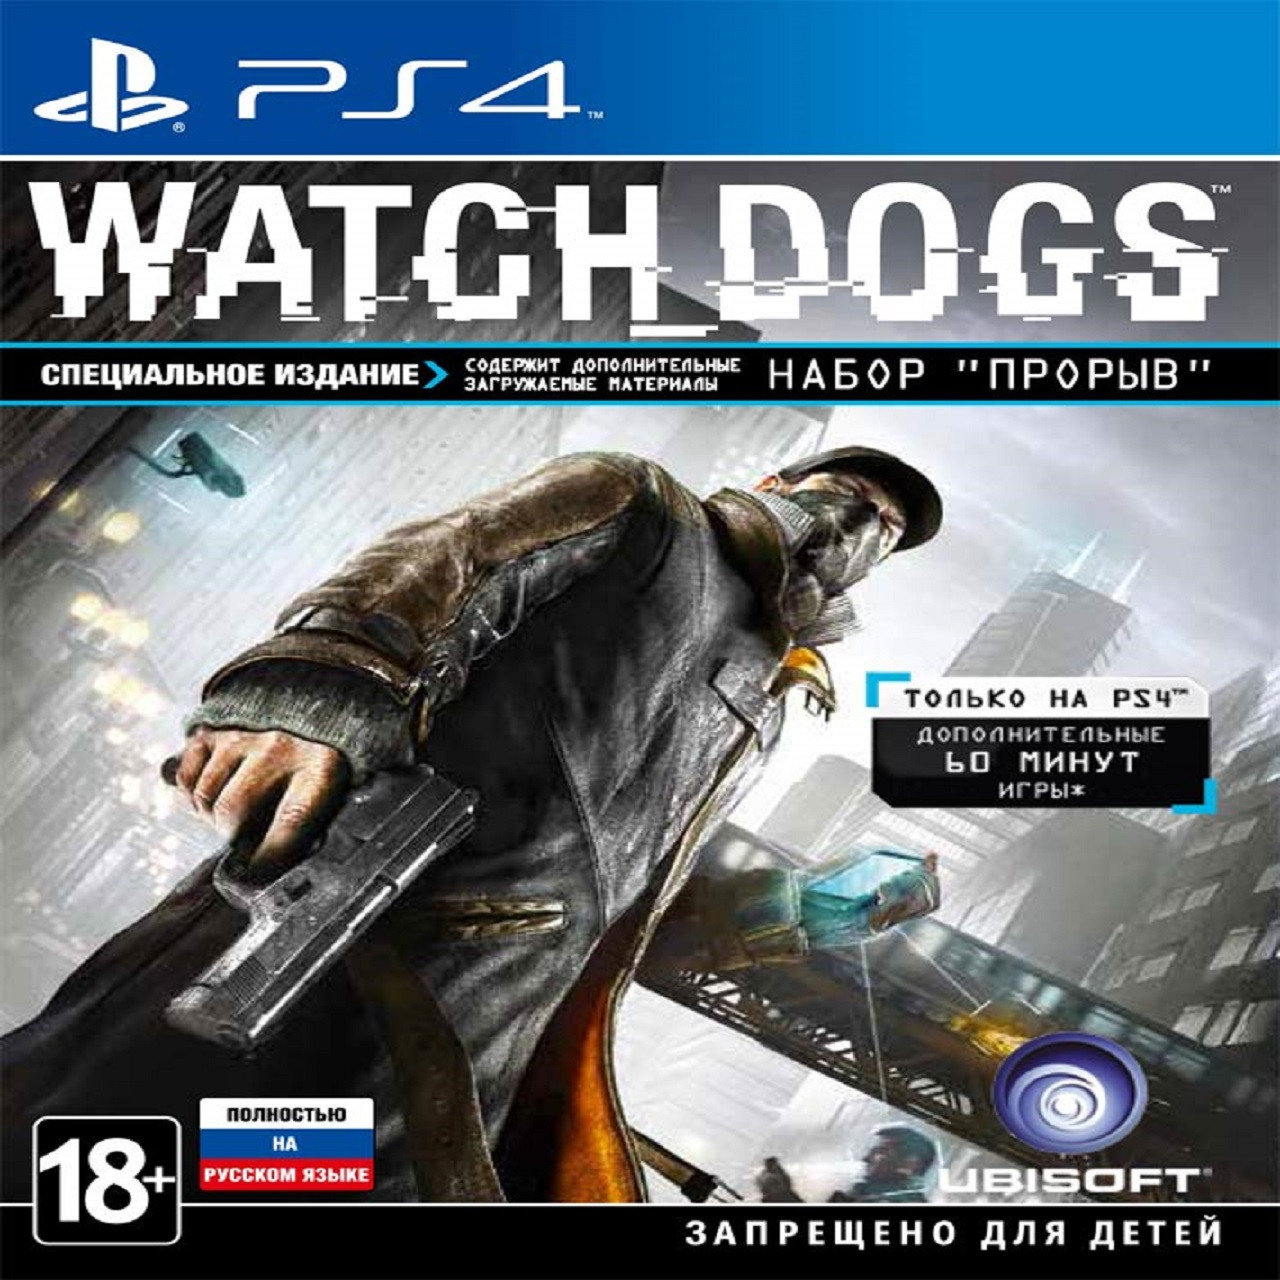 Watch Dogs RUS PS4 (Б/В)